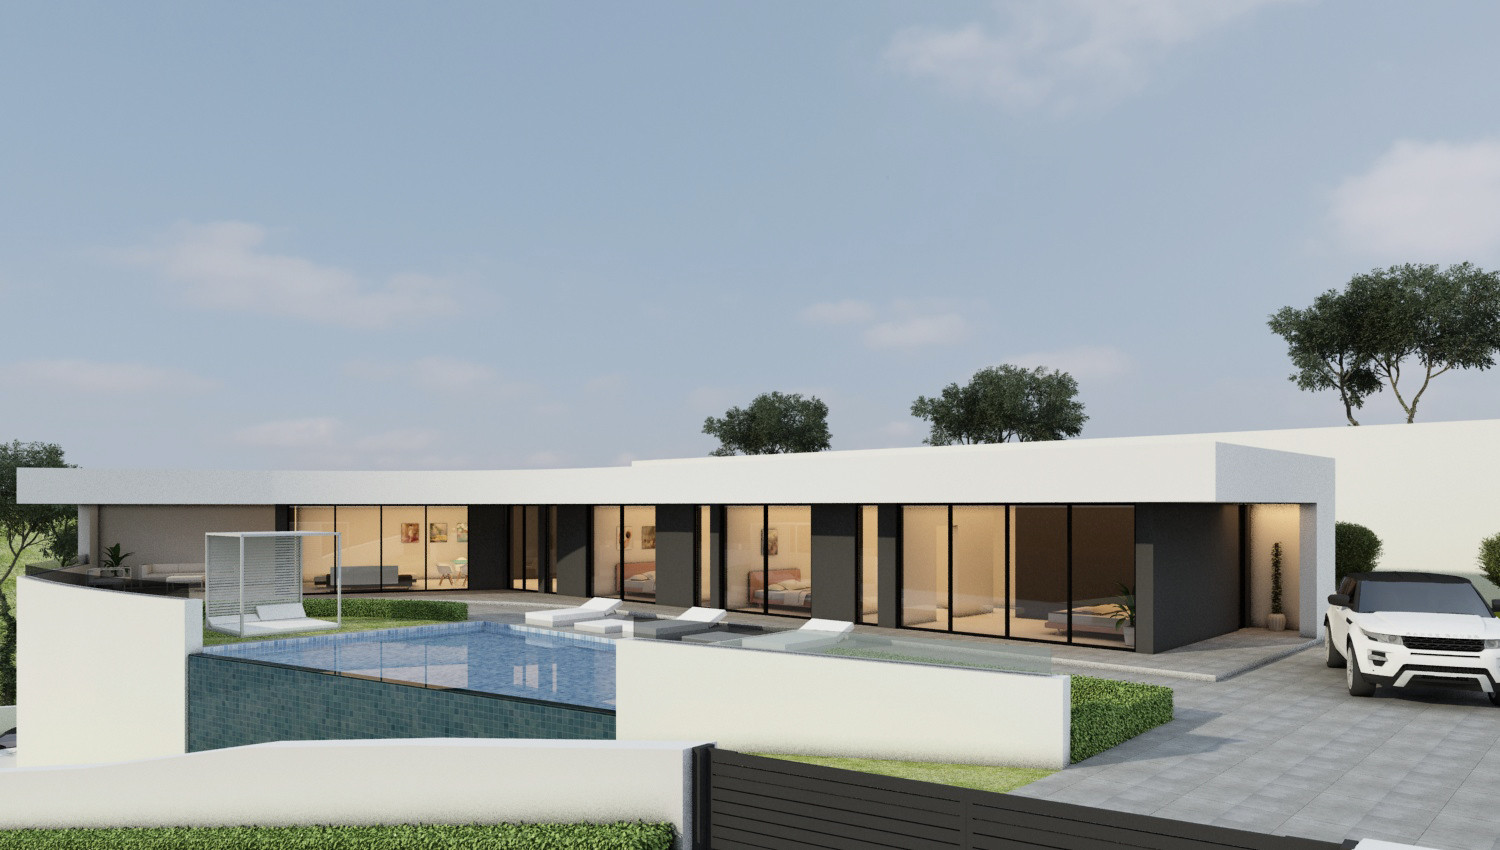 Villa Gameren Render Camera 1.jpg